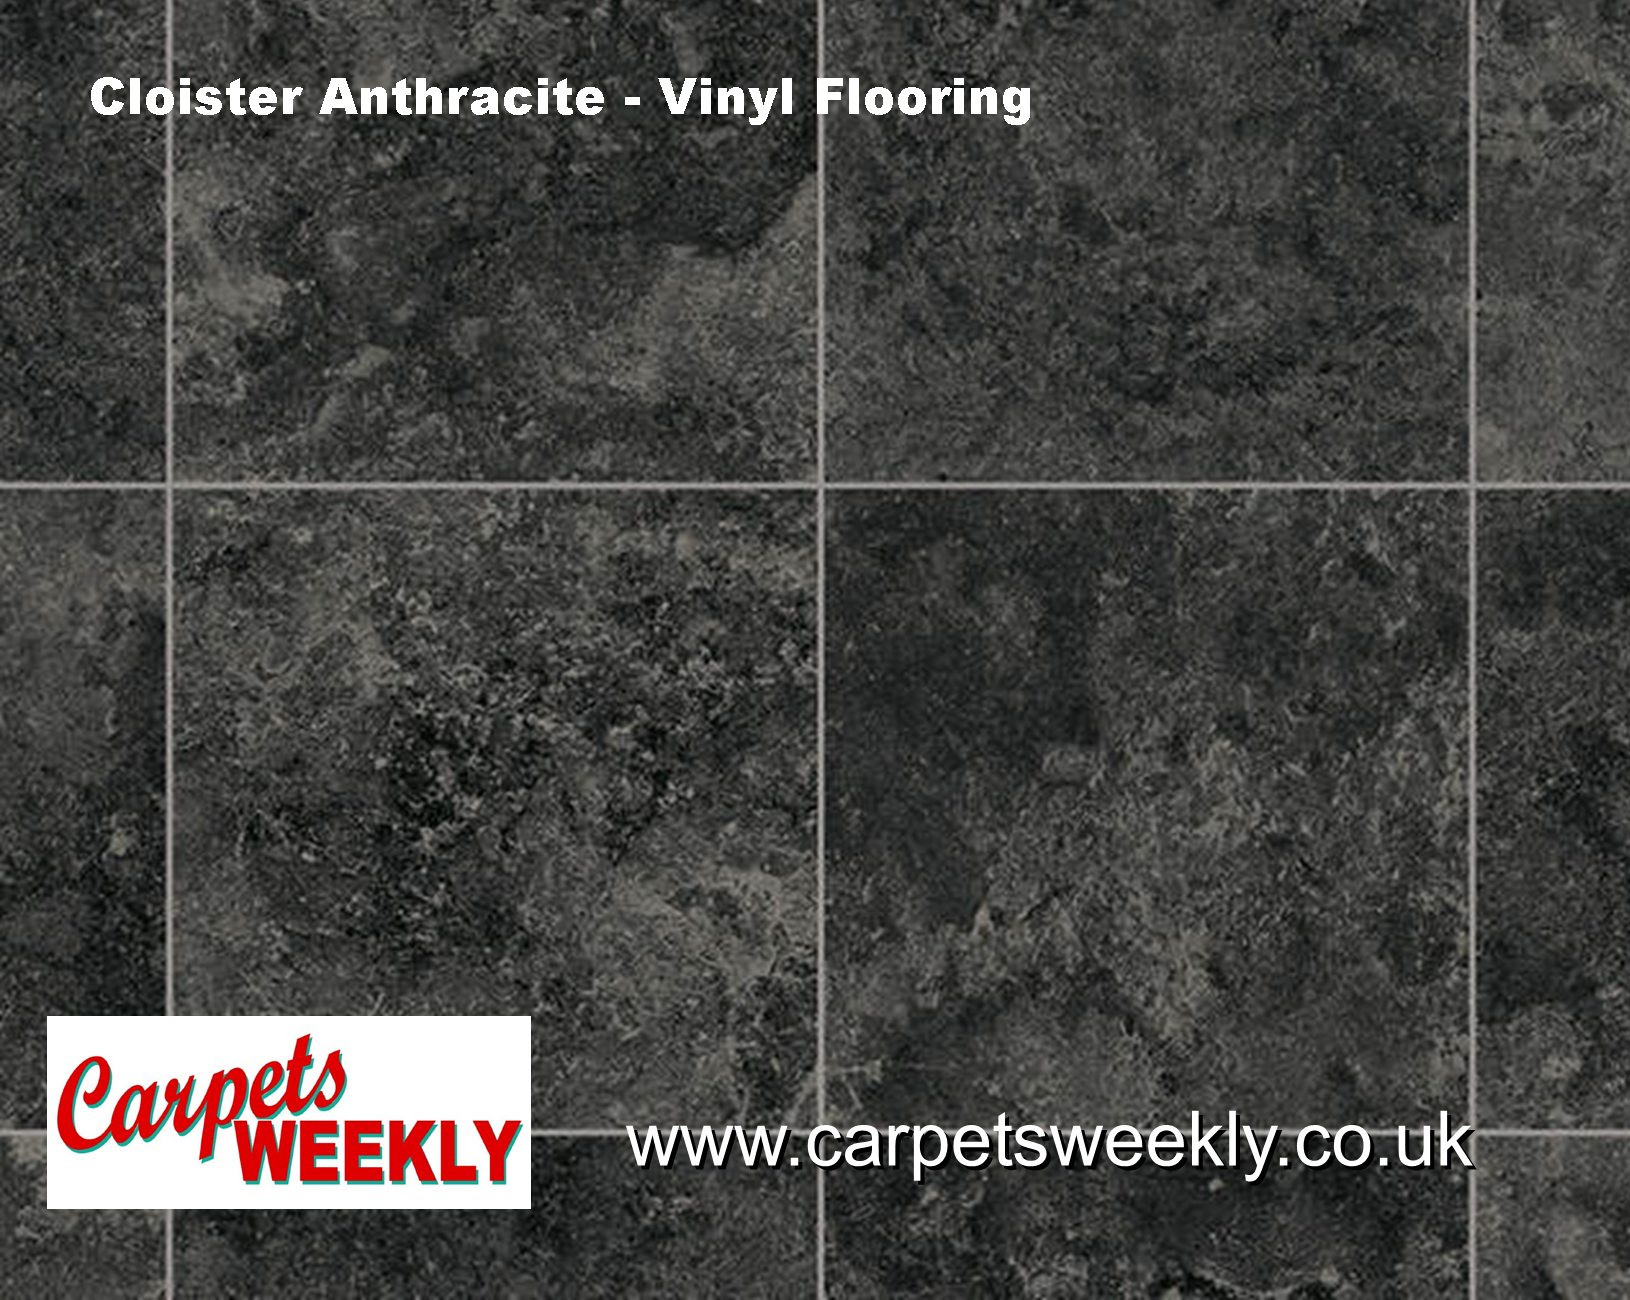 Cloister Anthracite  Rhinofloor Vinyl Flooring from Carpets Weekly